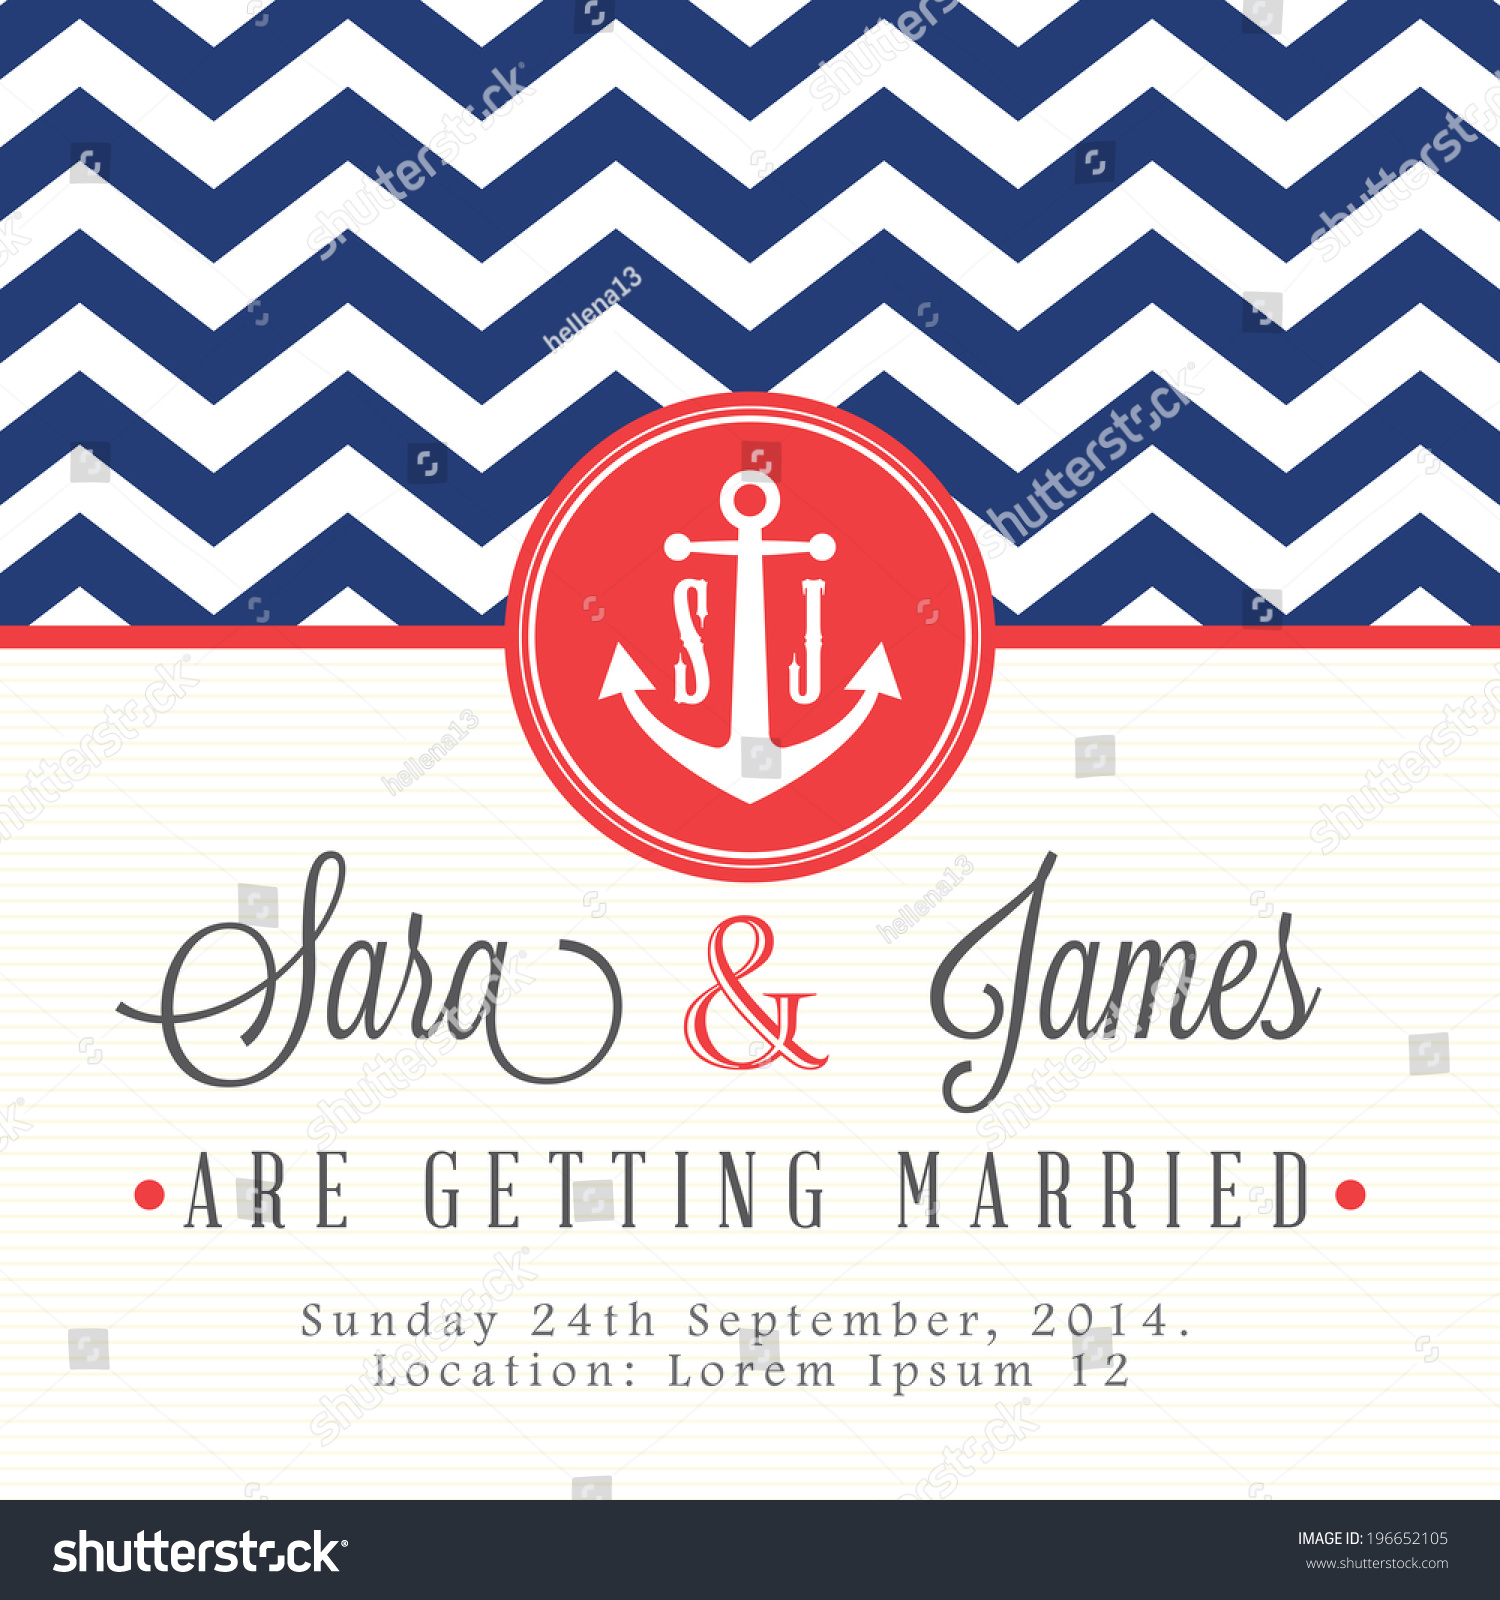 Nautical Wedding Invitation Card Stock Vector (Royalty Free ...